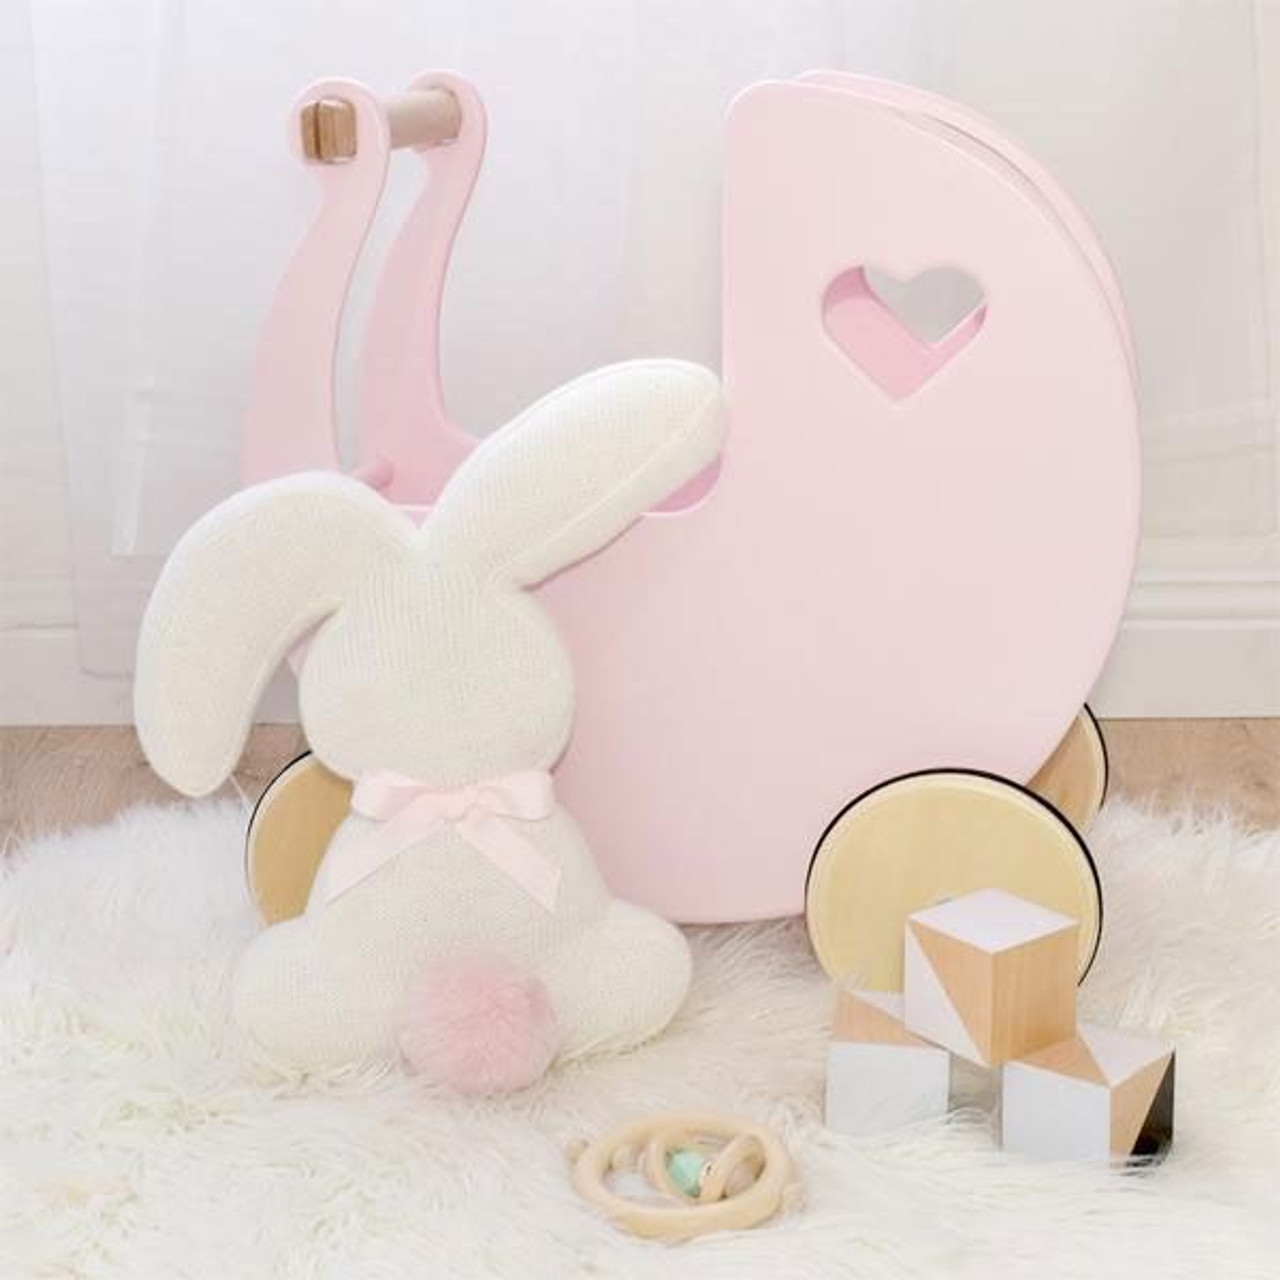 Lolli Living Character Knit Cushion Bunny at Baby Barn Discounts Add the perfect finishing touch with Lolli Living super sweet cotton knit bunny decorative cushion with fluffy pompom tail!